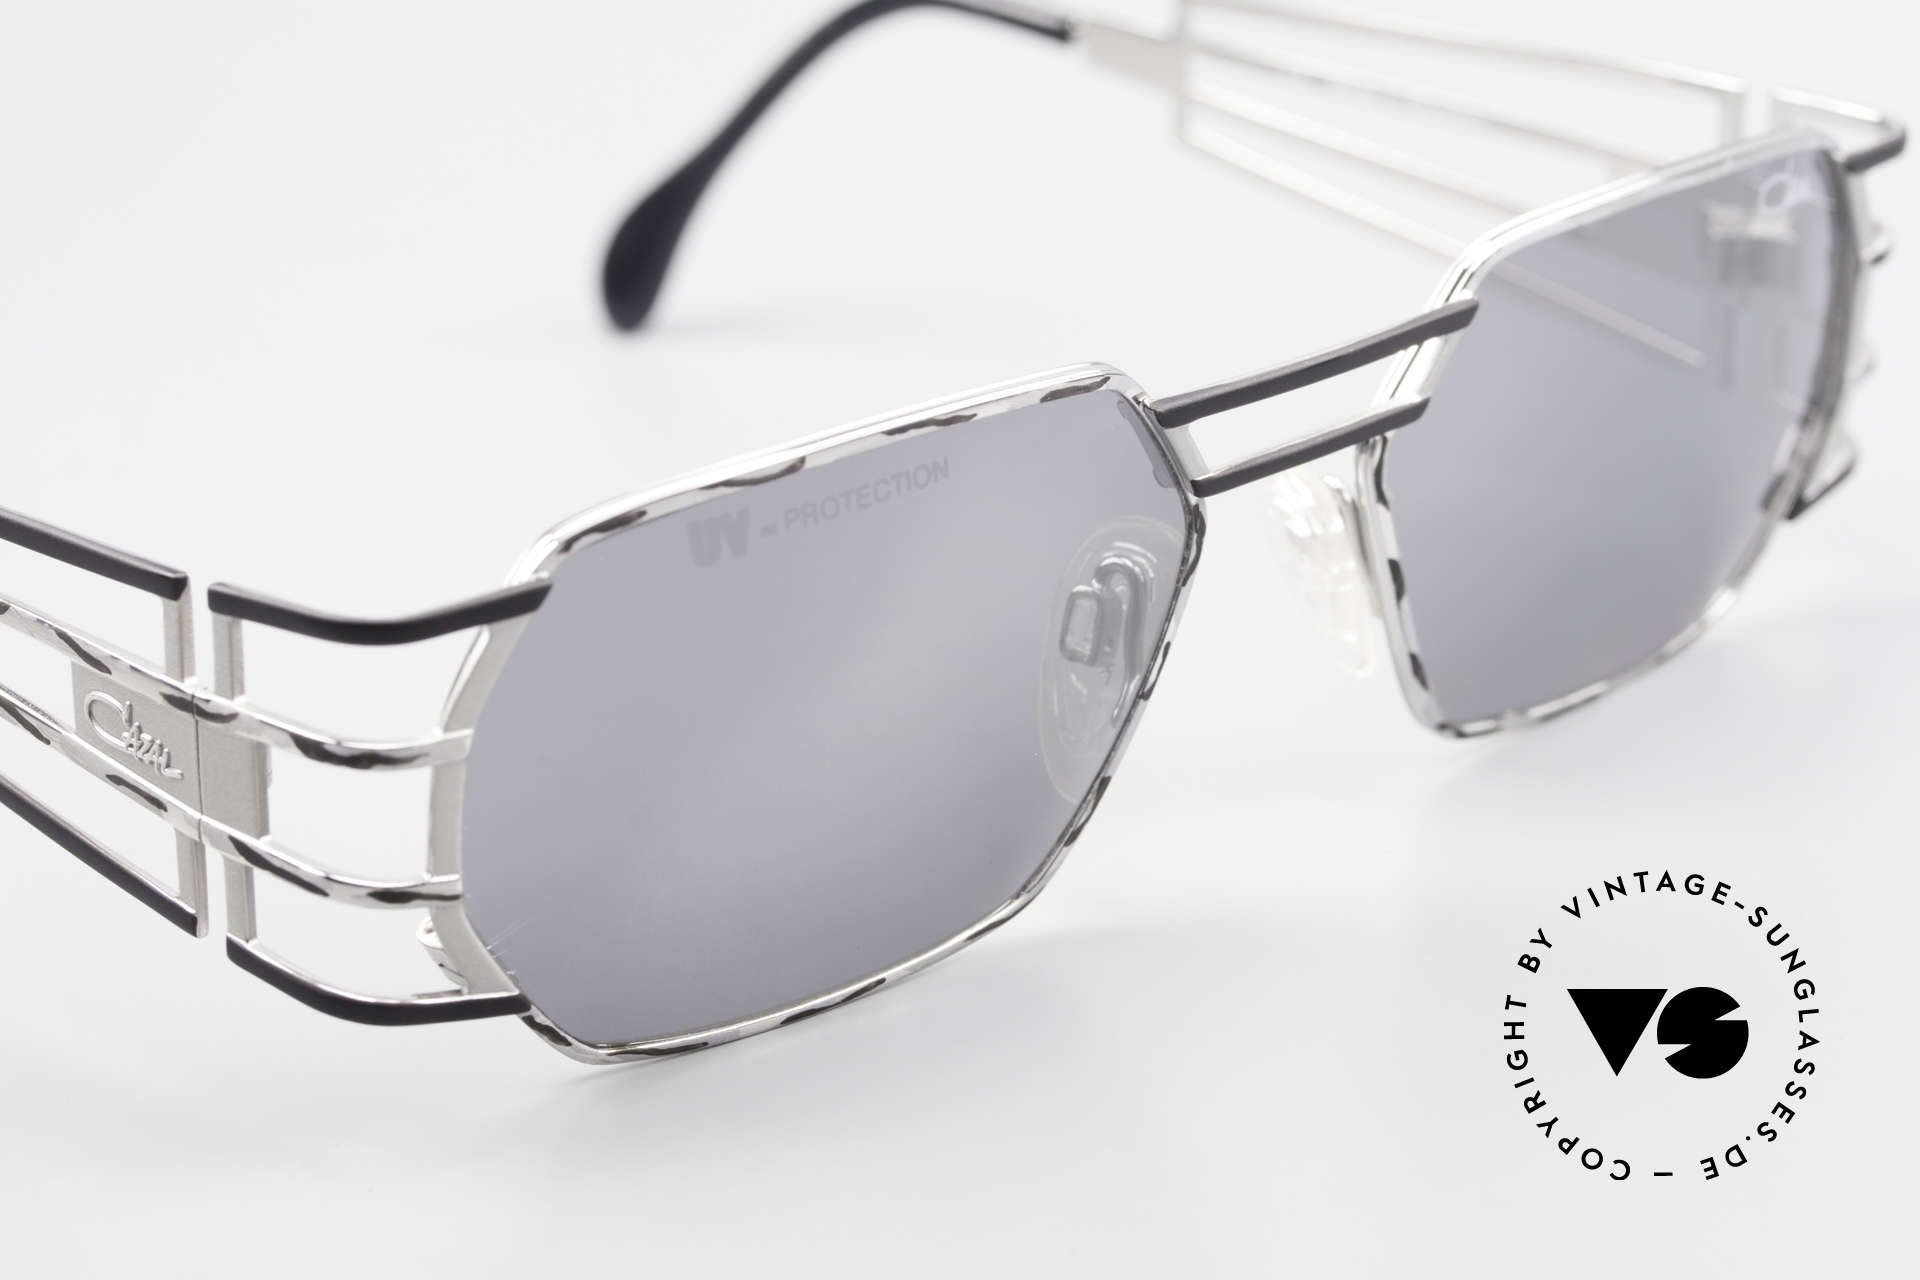 Cazal 980 Mirrored Designer Sunglasses, with high-end Cazal sun lenses for 100% UV protection, Made for Men and Women